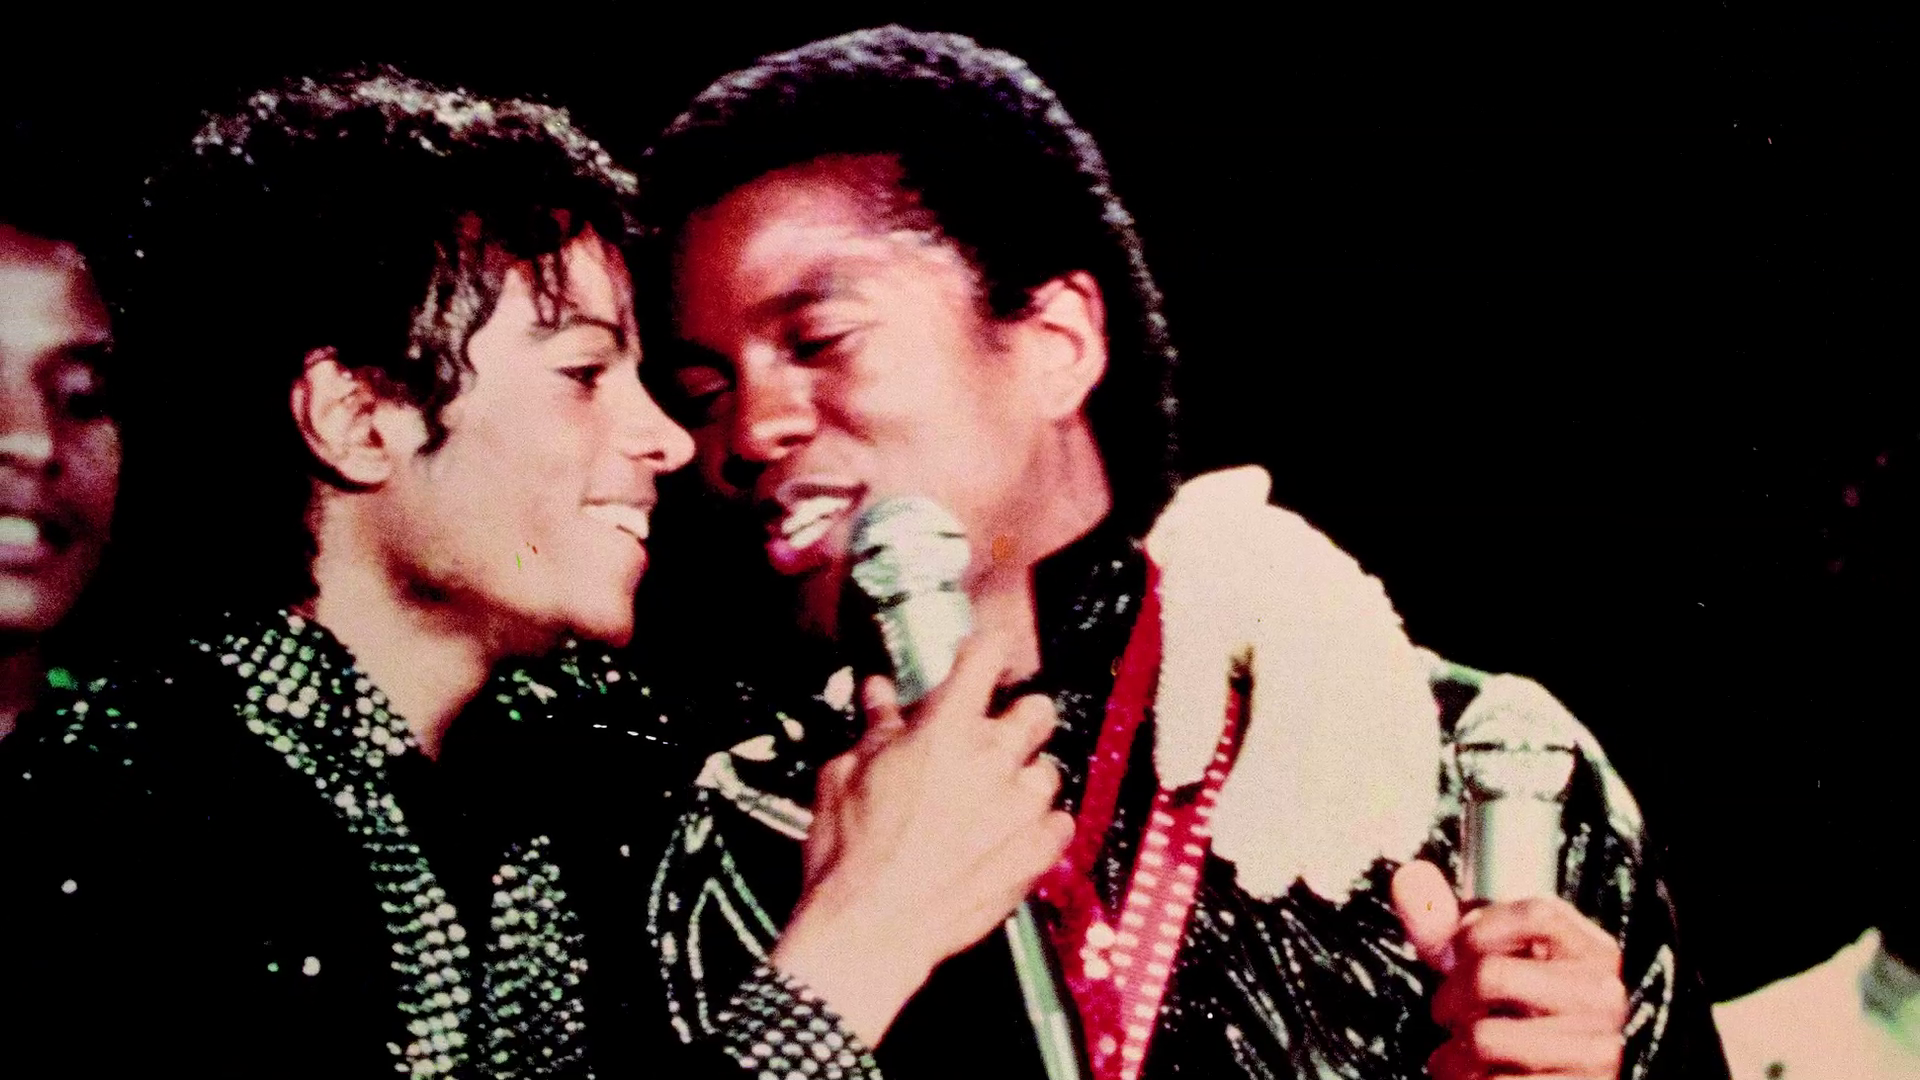 Jermaine Jackson on growing up with Michael Jackson